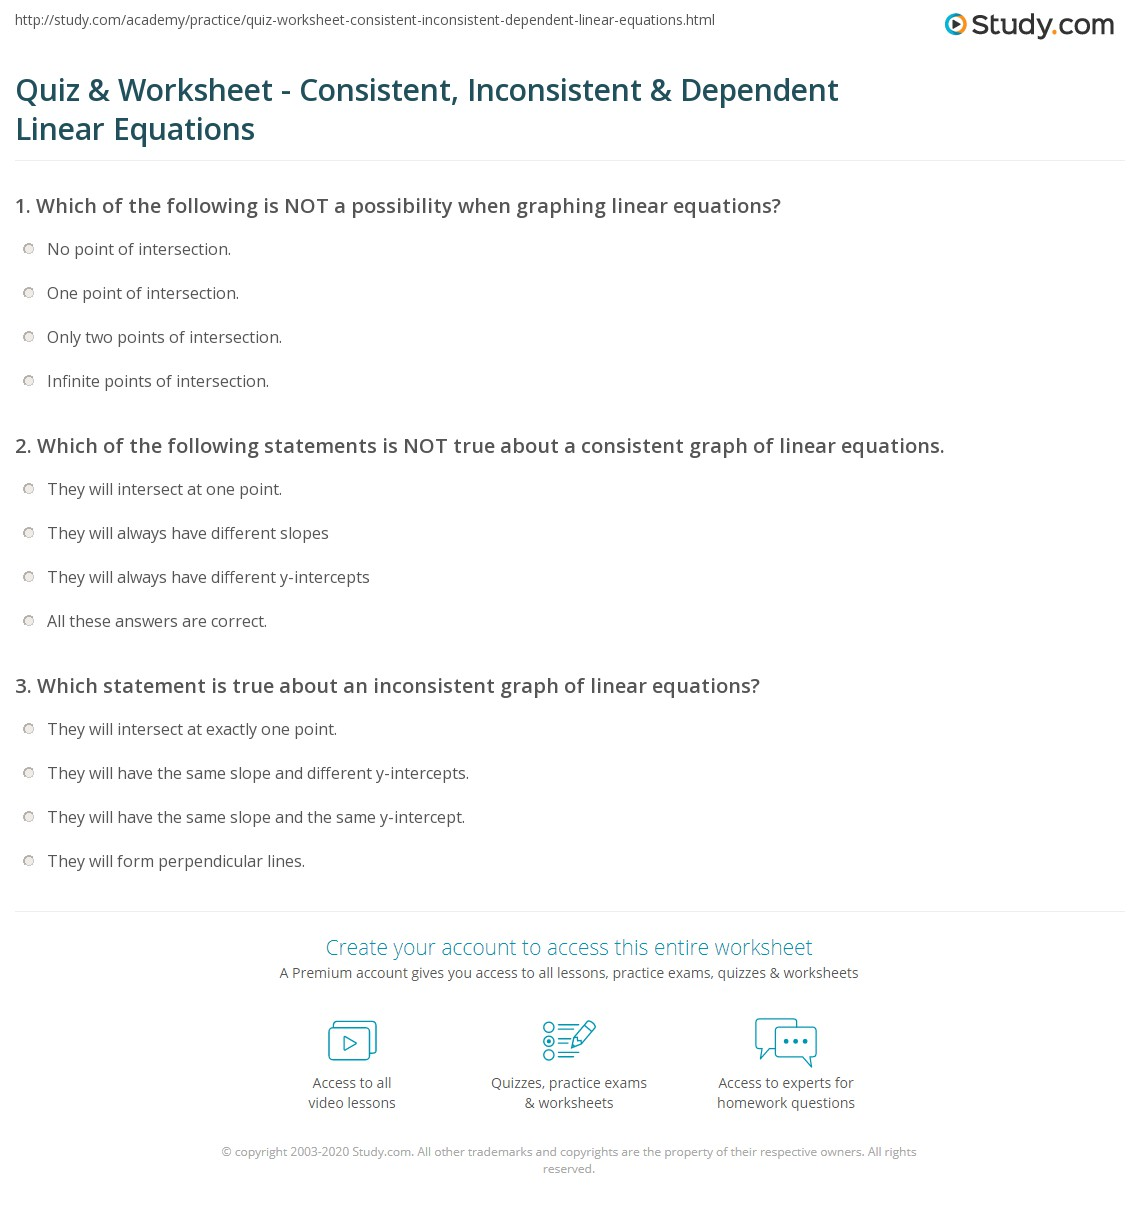 Quiz Worksheet Consistent Inconsistent Dependent Linear